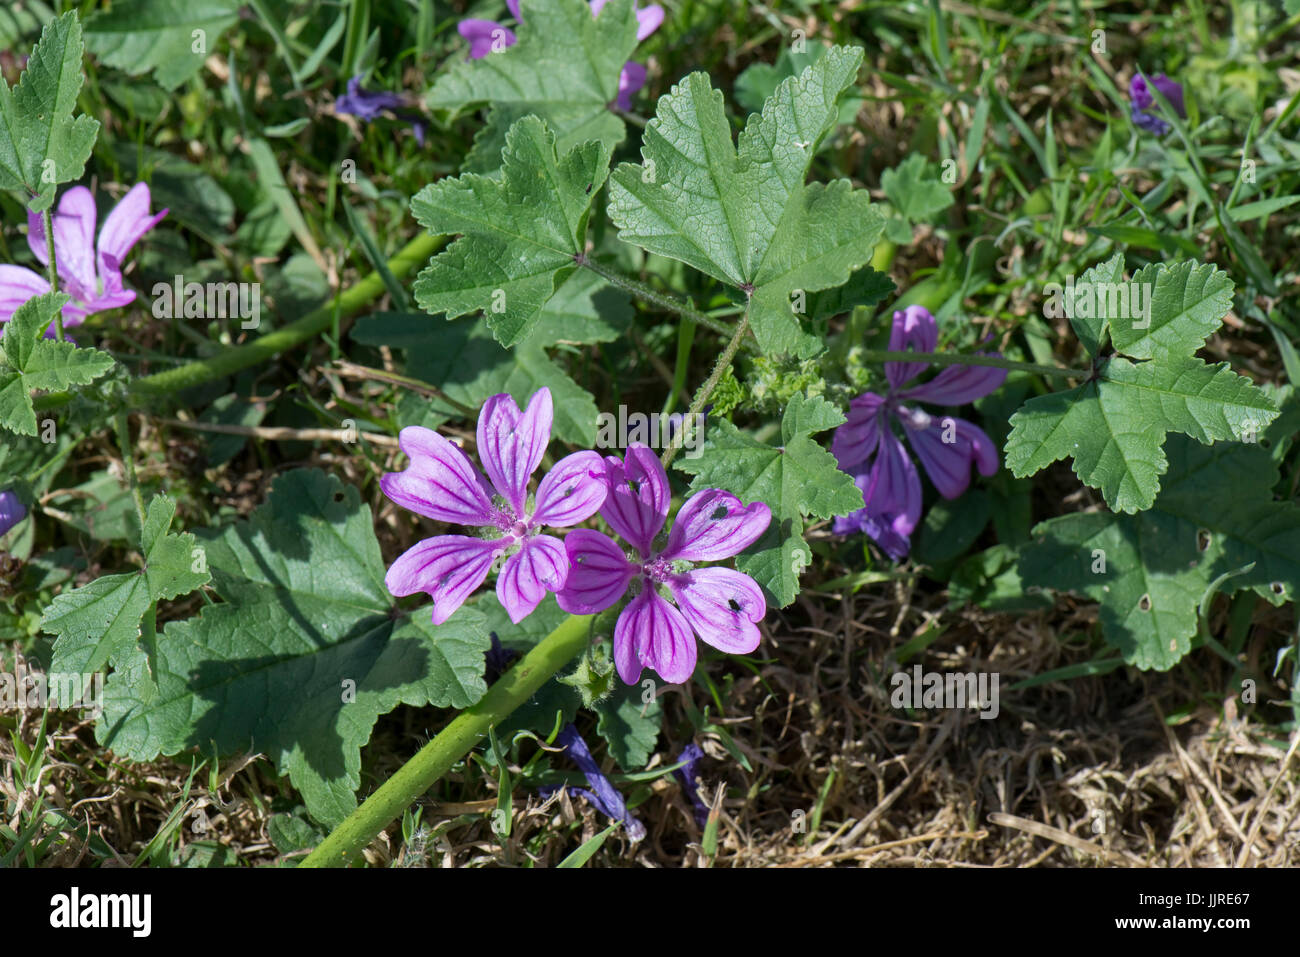 Mauve purple flowers with dark veins on a prostrate form of common mallow, Malva sylvestris, Berkshire, June - Stock Image